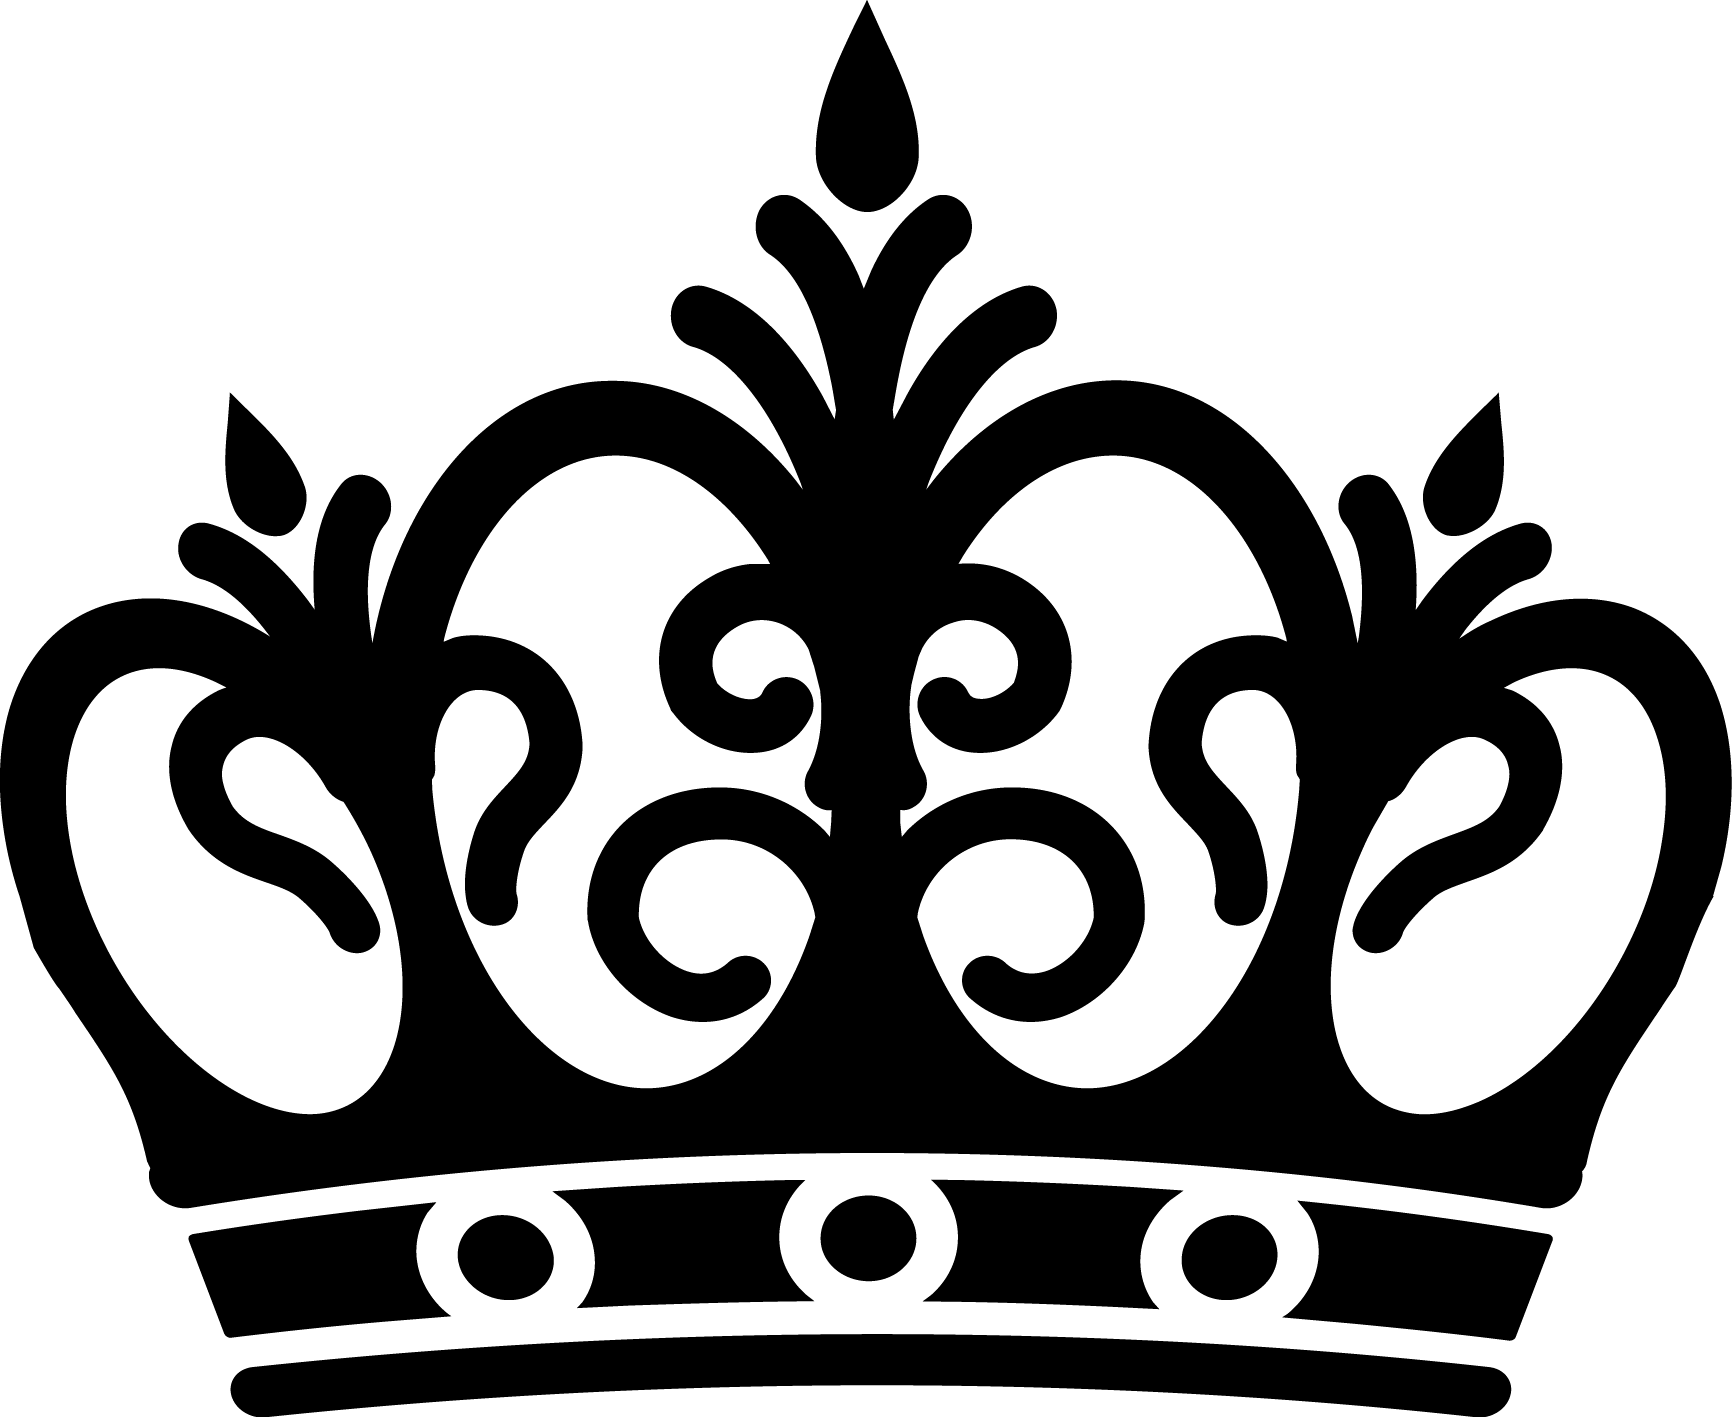 Sleeping beauty crown clipart black and white image free stock crown vector png - Buscar con Google | Tatuajes | Pinterest | Crown ... image free stock